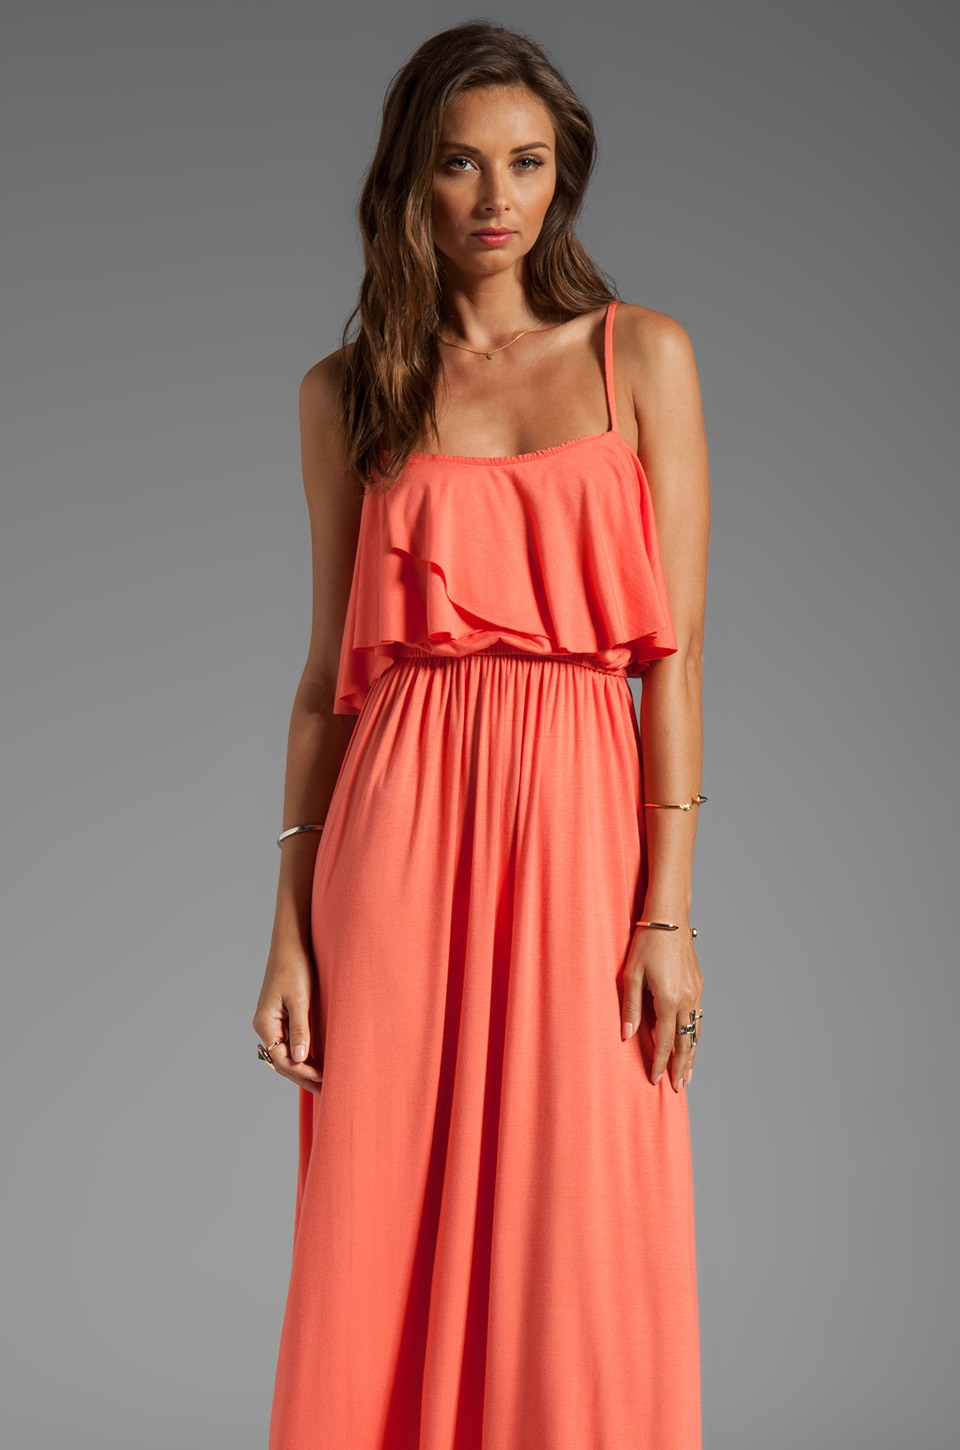 Rachel Pally Cloris Maxi Dress in Apricot